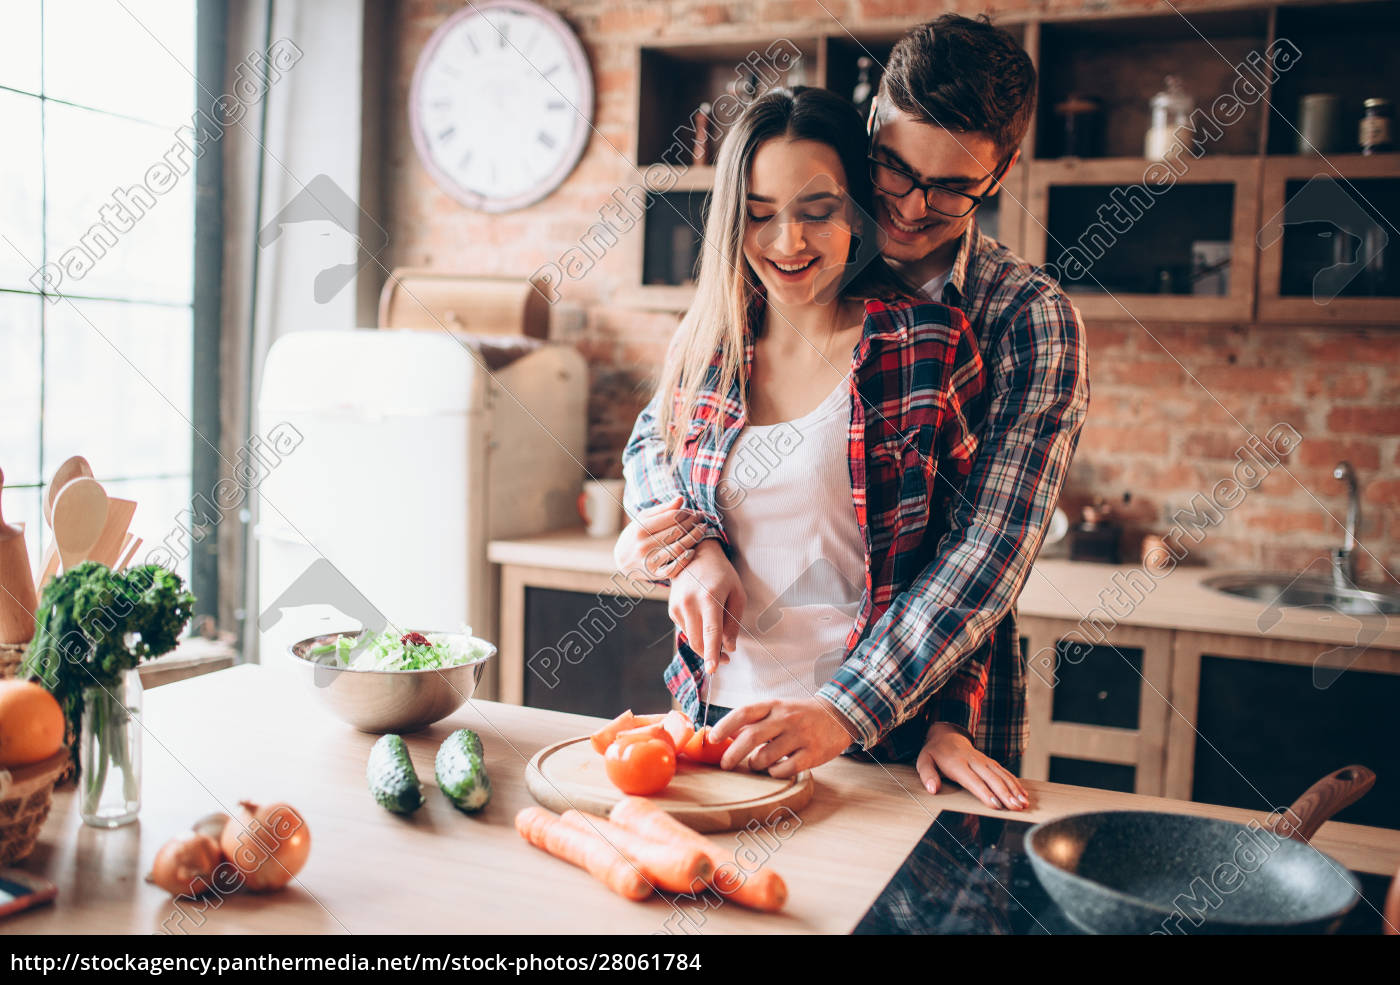 couple, hugs, while, cooking, fresh, vegetable - 28061784